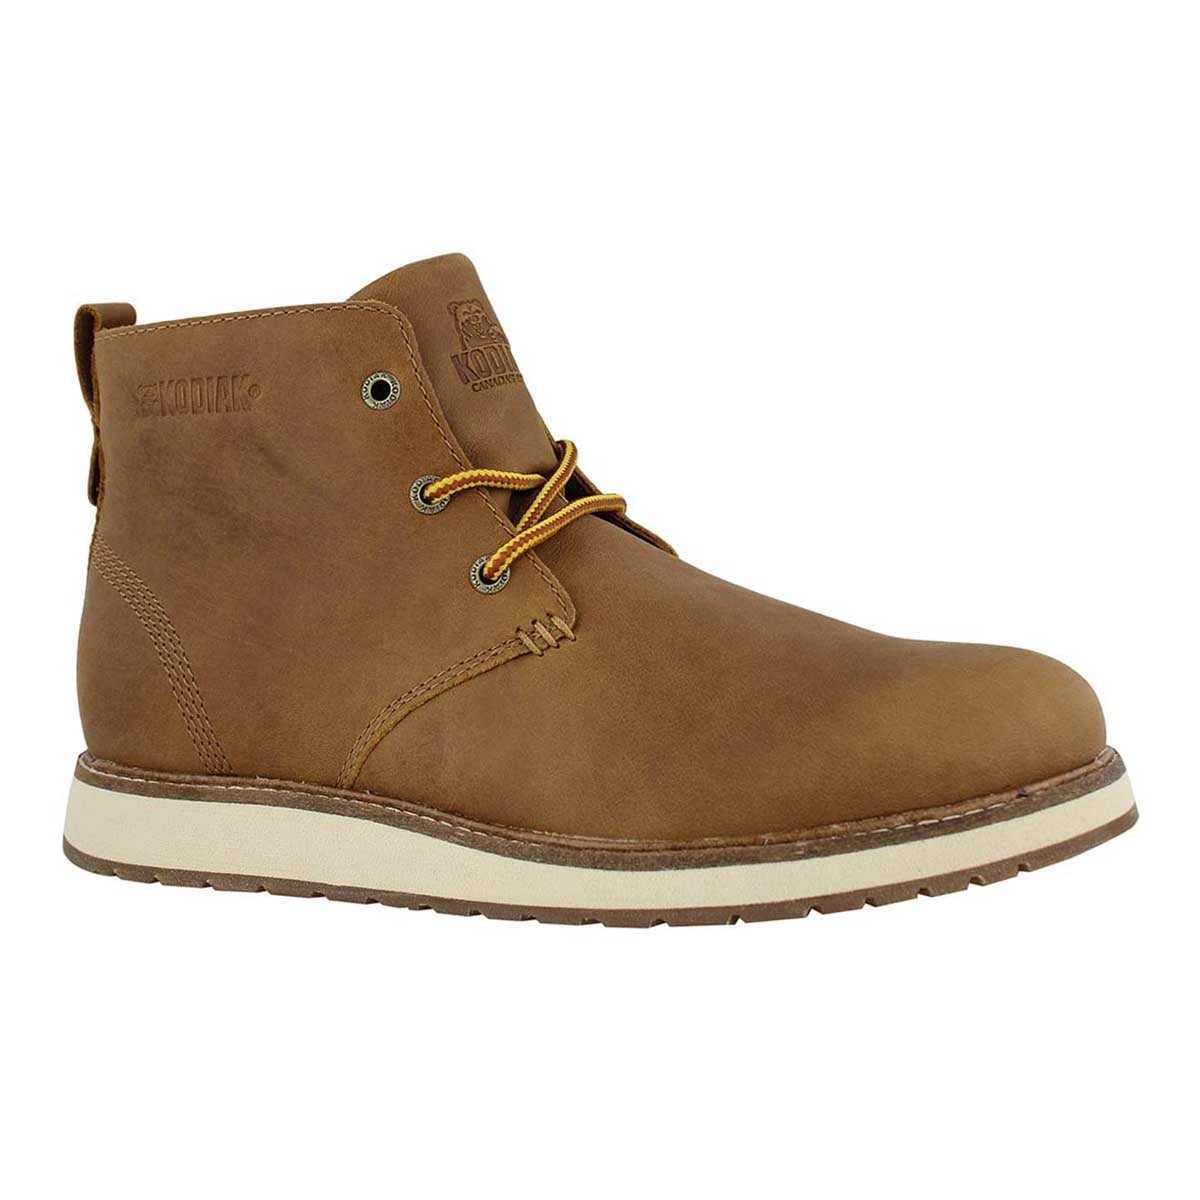 Mns Chase caramel wtpf 3-eye ankle boot